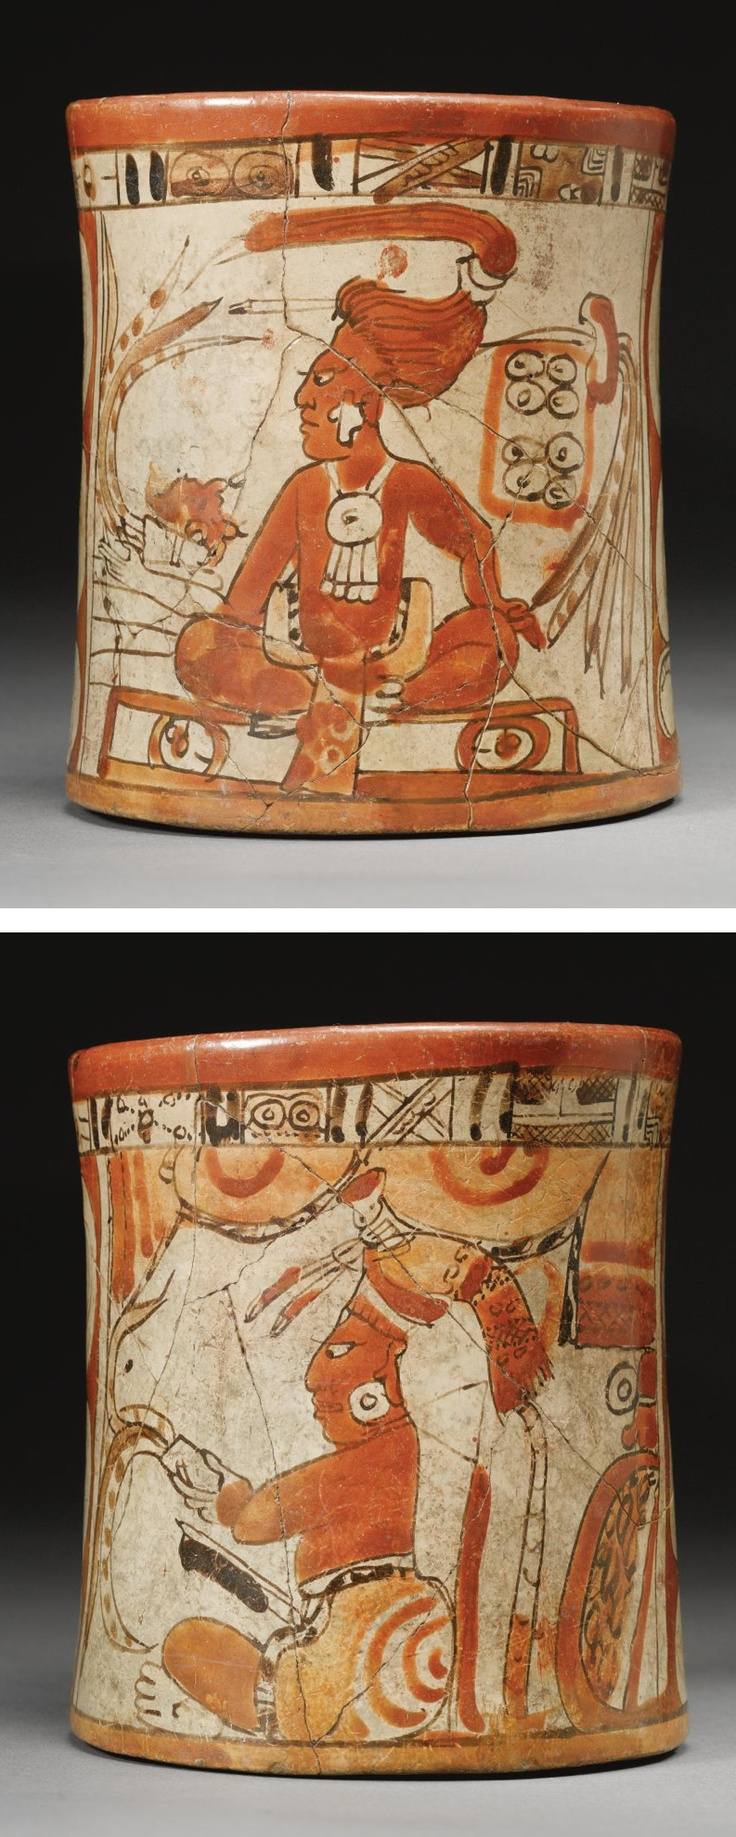 A MAYA POLYCHROME VESSEL,  LATE CLASSIC, CA. A.D. 550-950  brightly painted, one side with a young lord, perhaps as Hero Twin observing the codex with human mask ontop, the lord with high swept long coiffure and large disc pendant with dangles, the reverse with a turbaned lord holding a plumed implement, perhaps perforator, wearing tiedye loincloth, with large pillow behind and swaggered curtains above, a skyband encircling the rim.